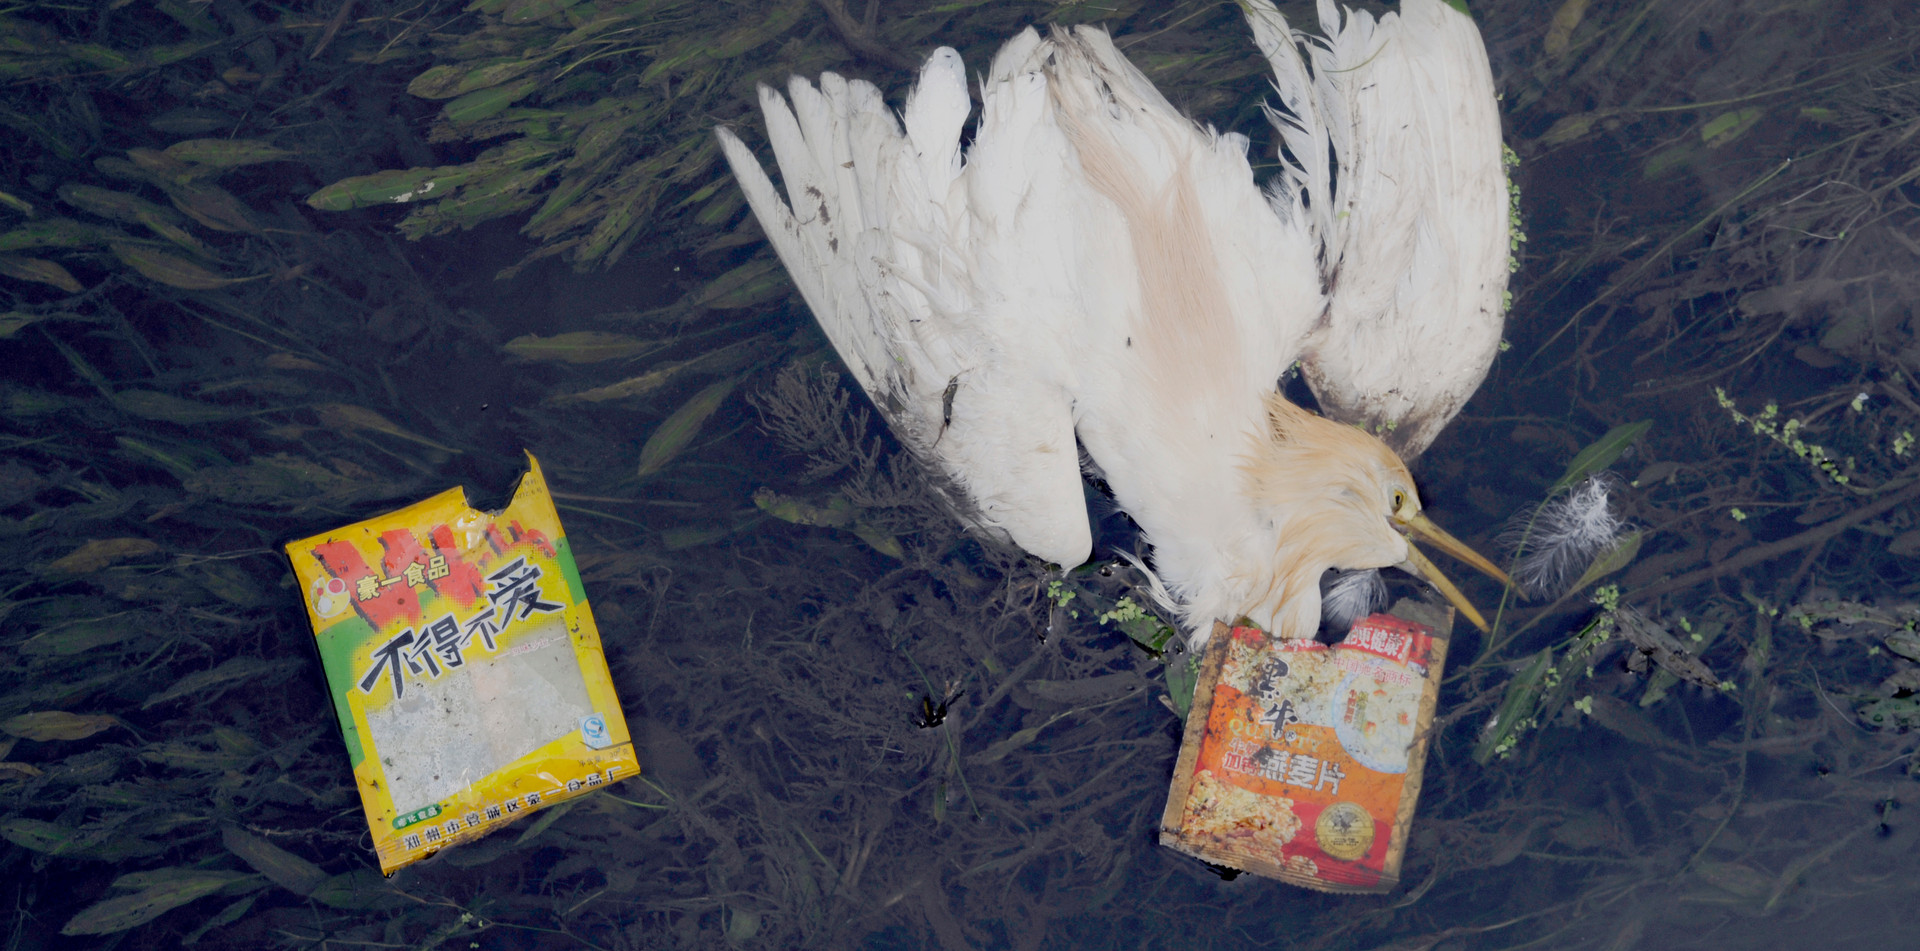 Dead bird in polluted river in China